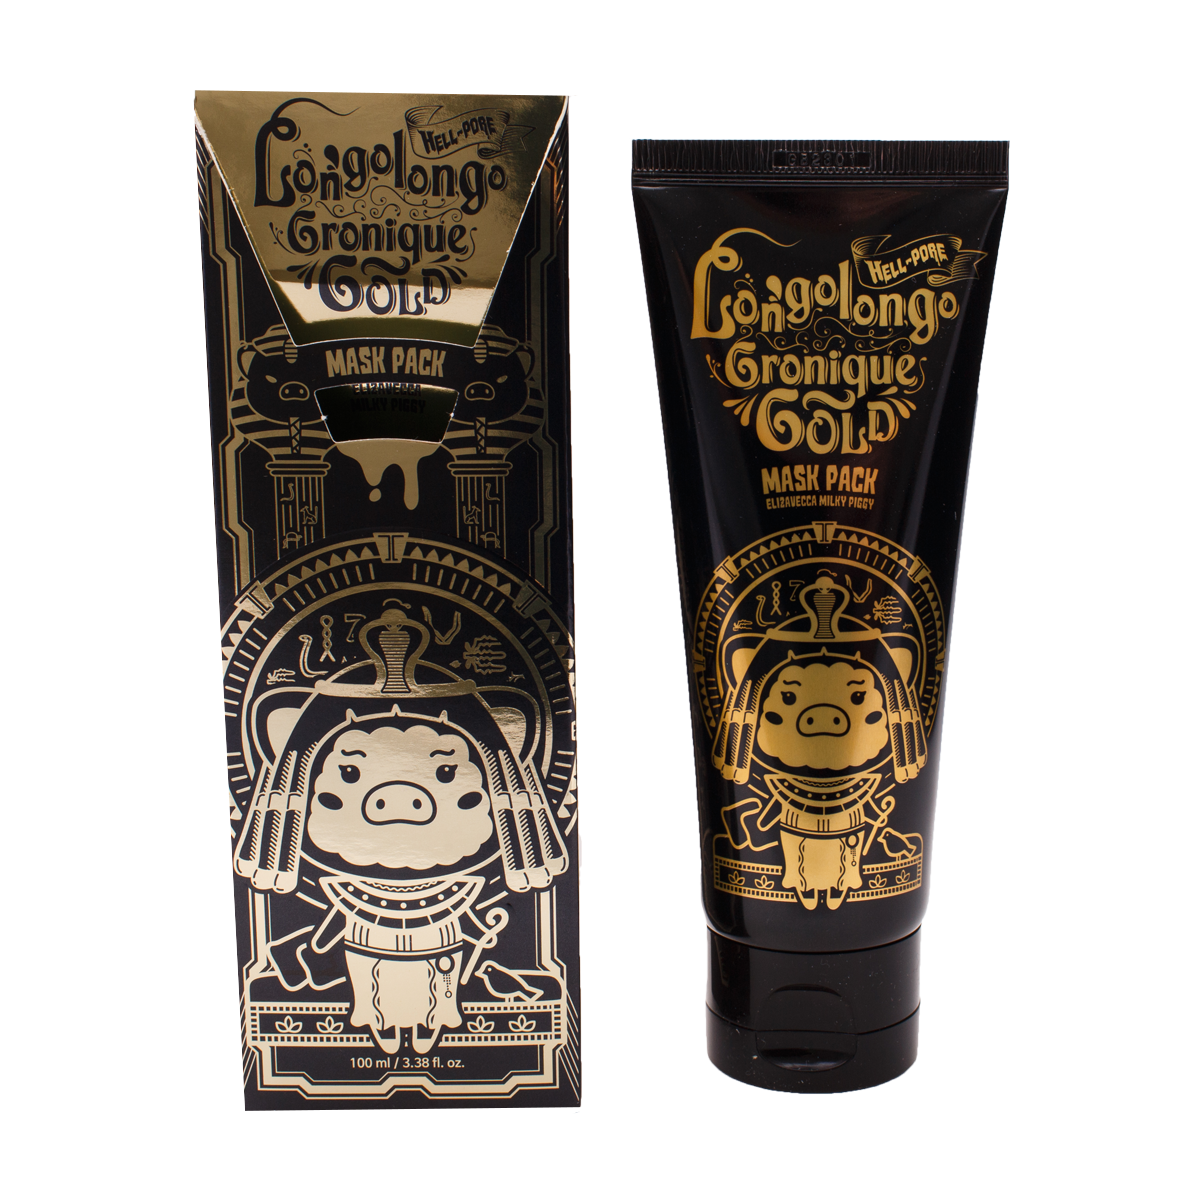 Маски-пленки Золотая омолаживающая маска пленка Hell Pore Longolongo Gronique Gold Mask Pack, 100 мл import_files_49_498aeb9d63c211e880c694de8014b43e_c9c310f9322211e980eb00155d005a0e.png